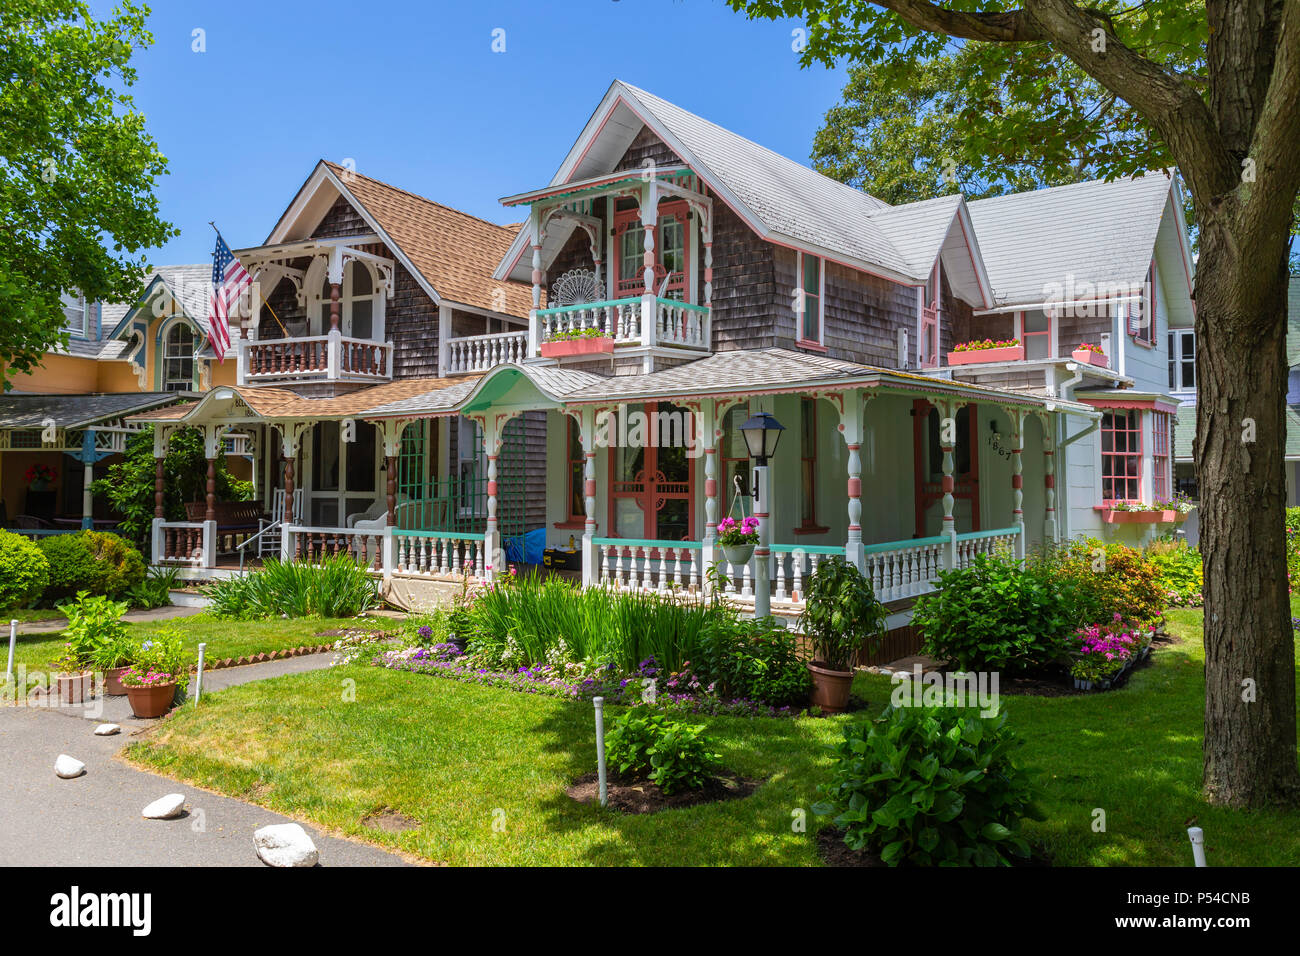 Colorful gingerbread cottages in the Martha's Vineyard Camp Meeting Association (MVCMA) in Oak Bluffs, Massachusetts. - Stock Image